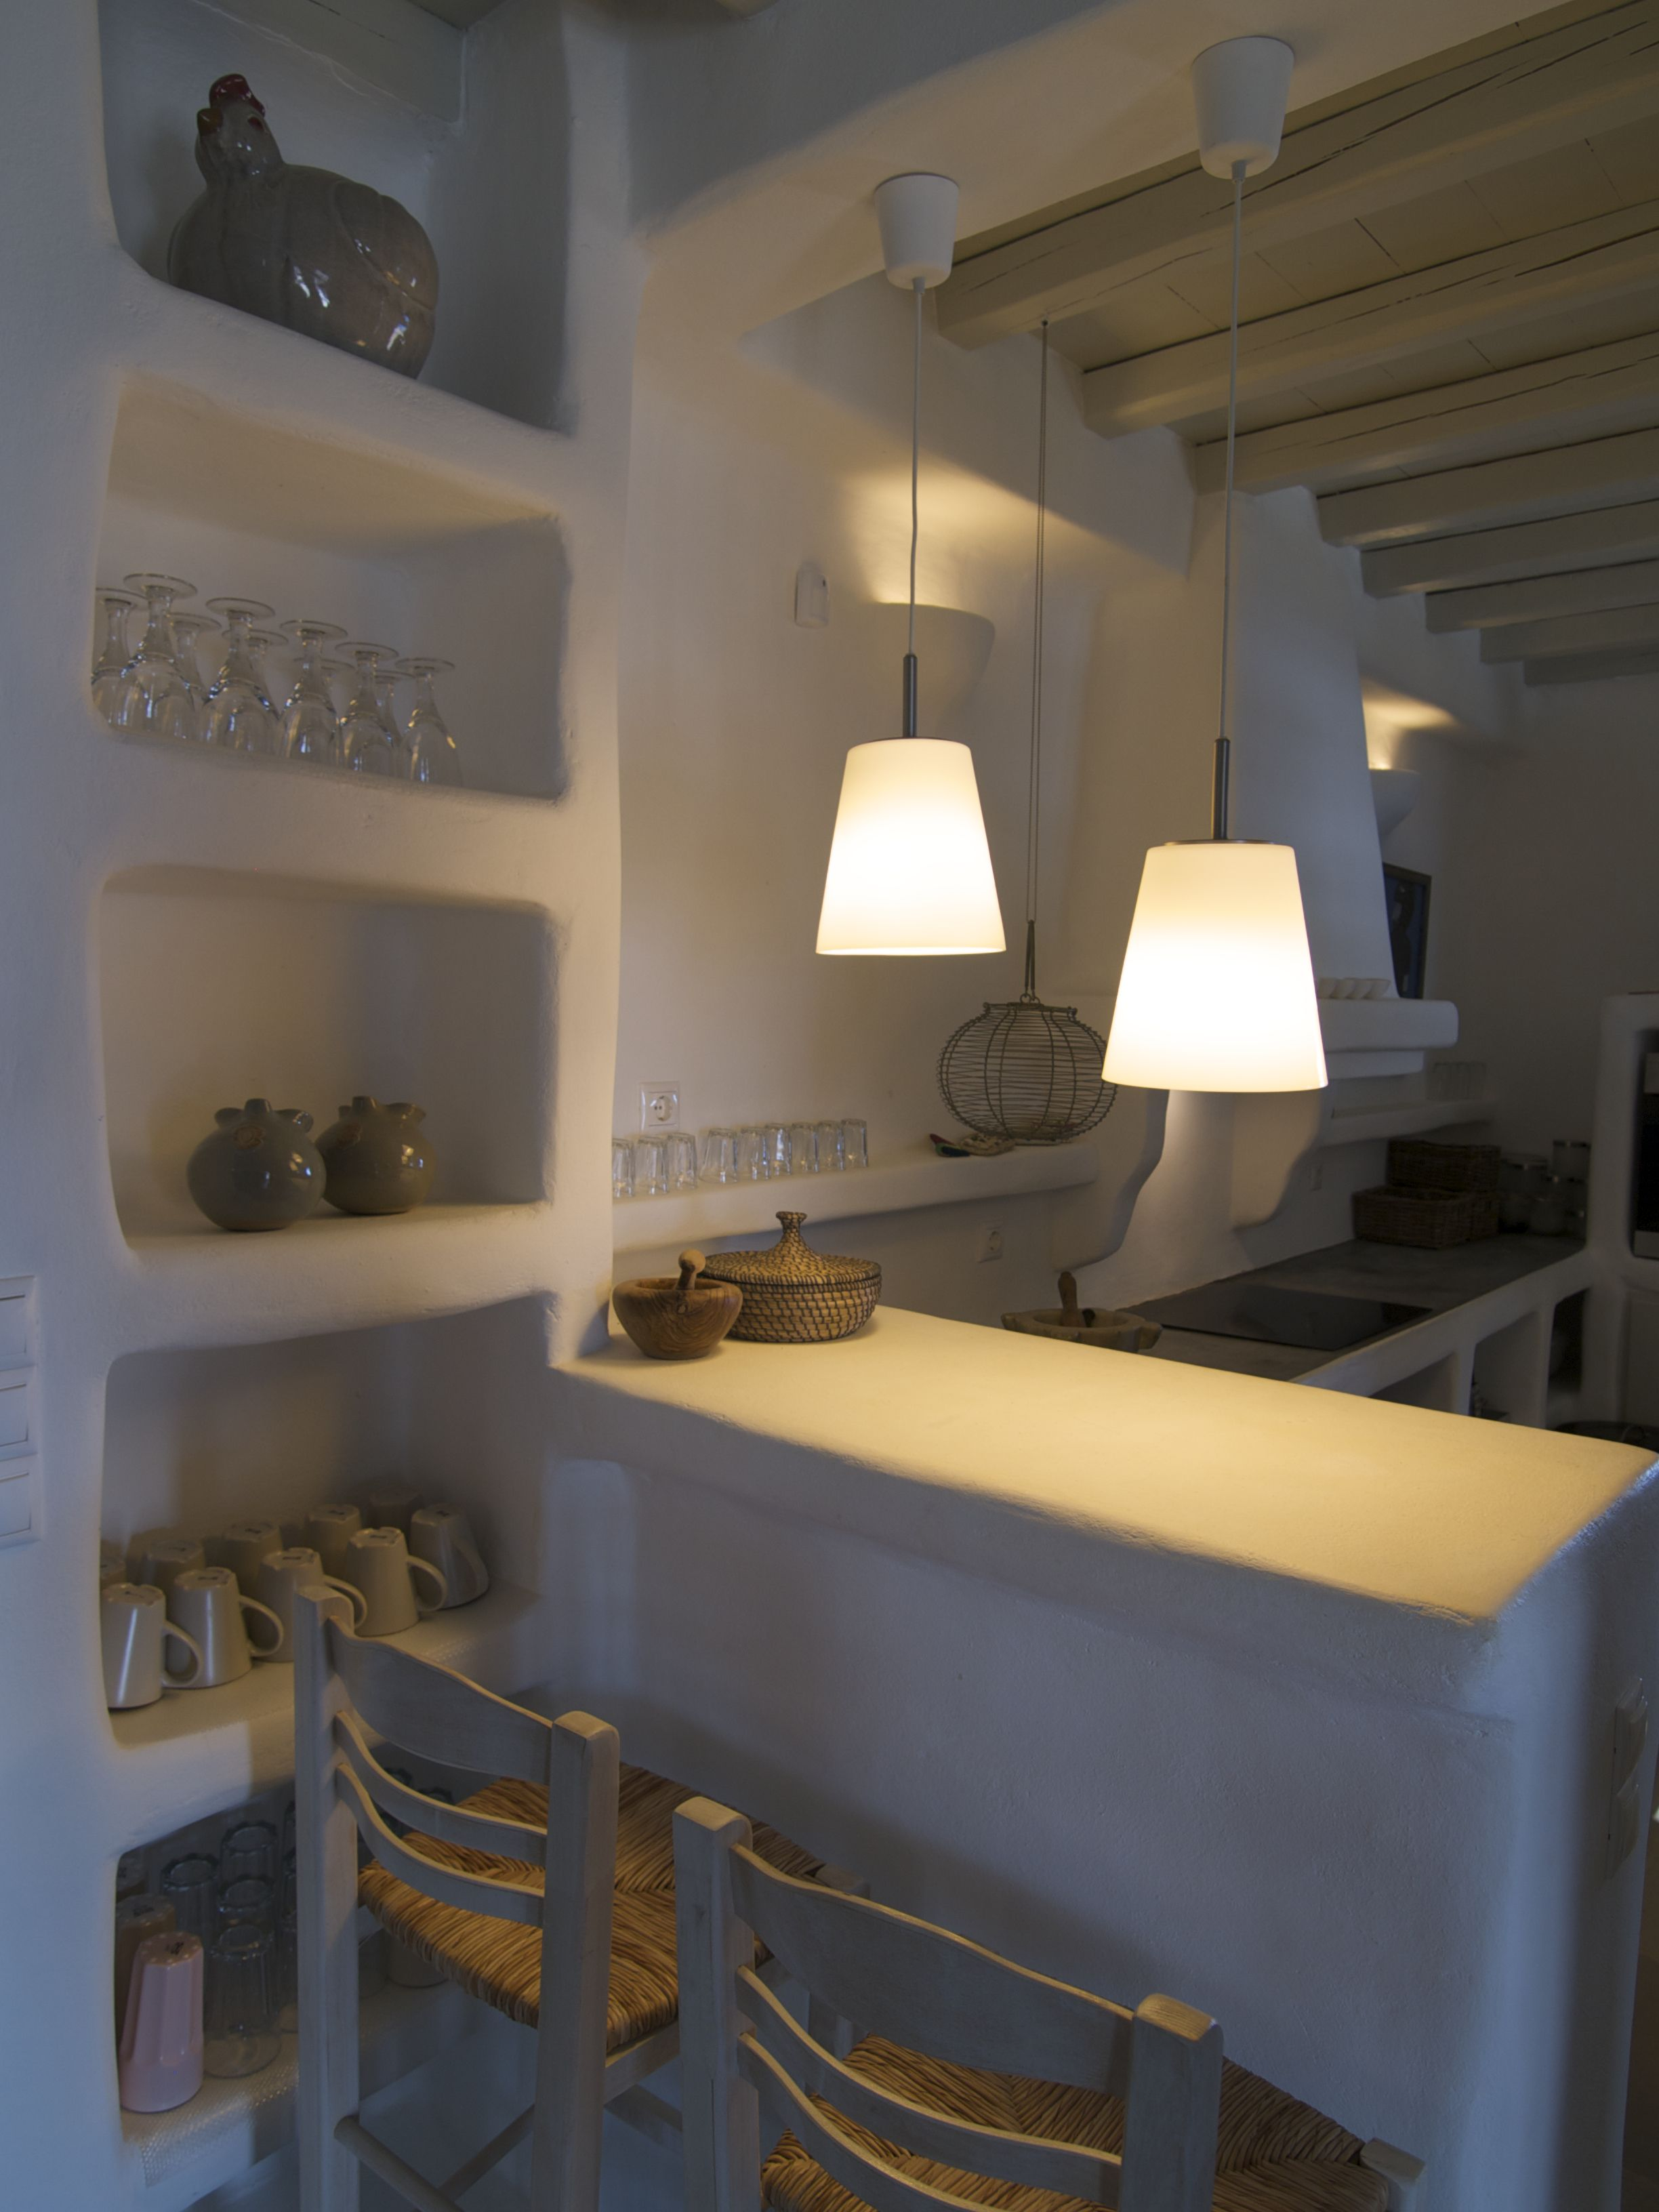 Antiparos, Greece. Built kitchen and cupboards.